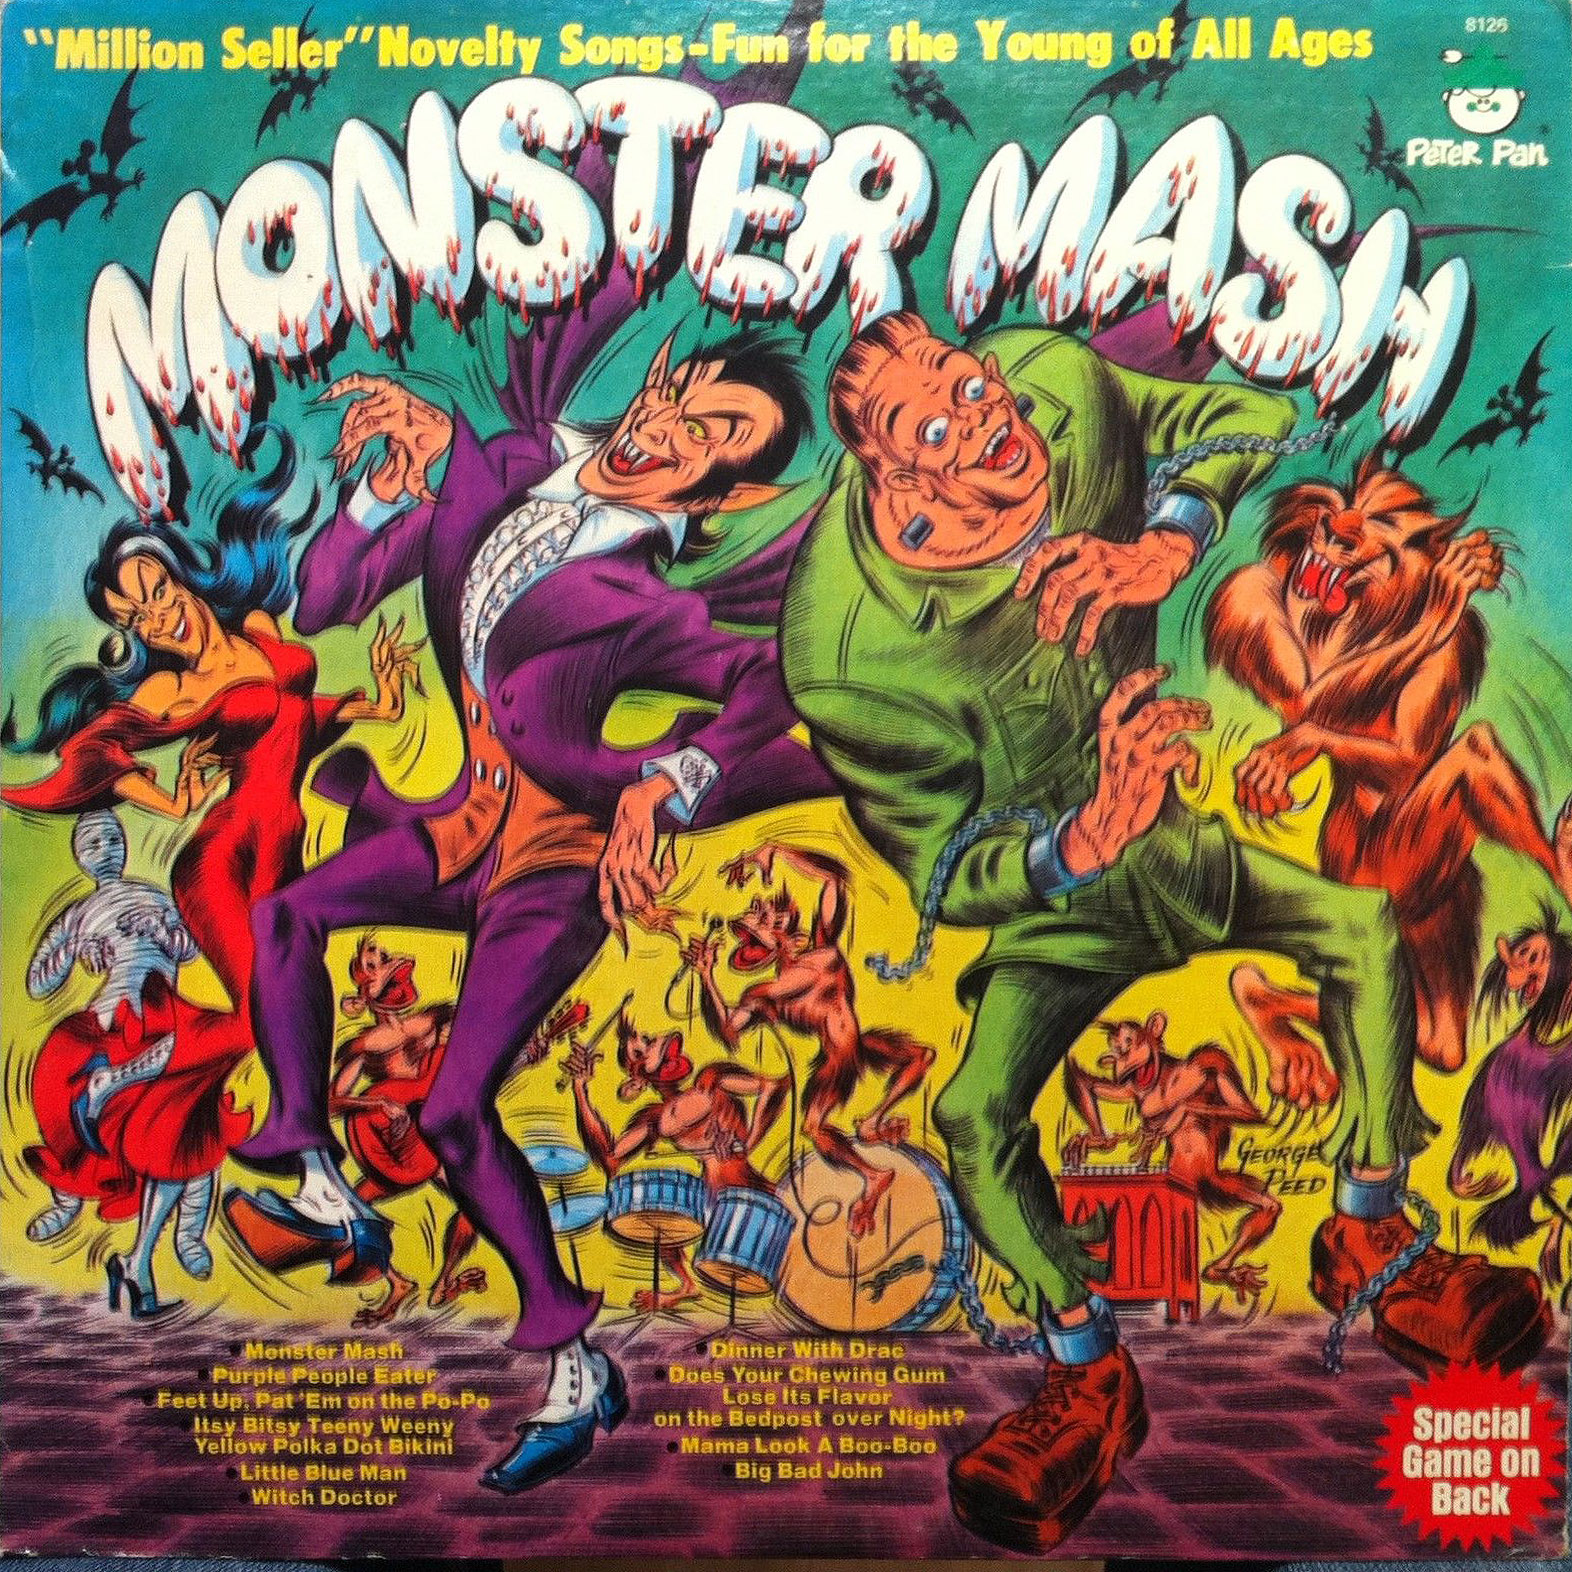 beyond 'monster mash': 20 novelty songs from the mid-century horror